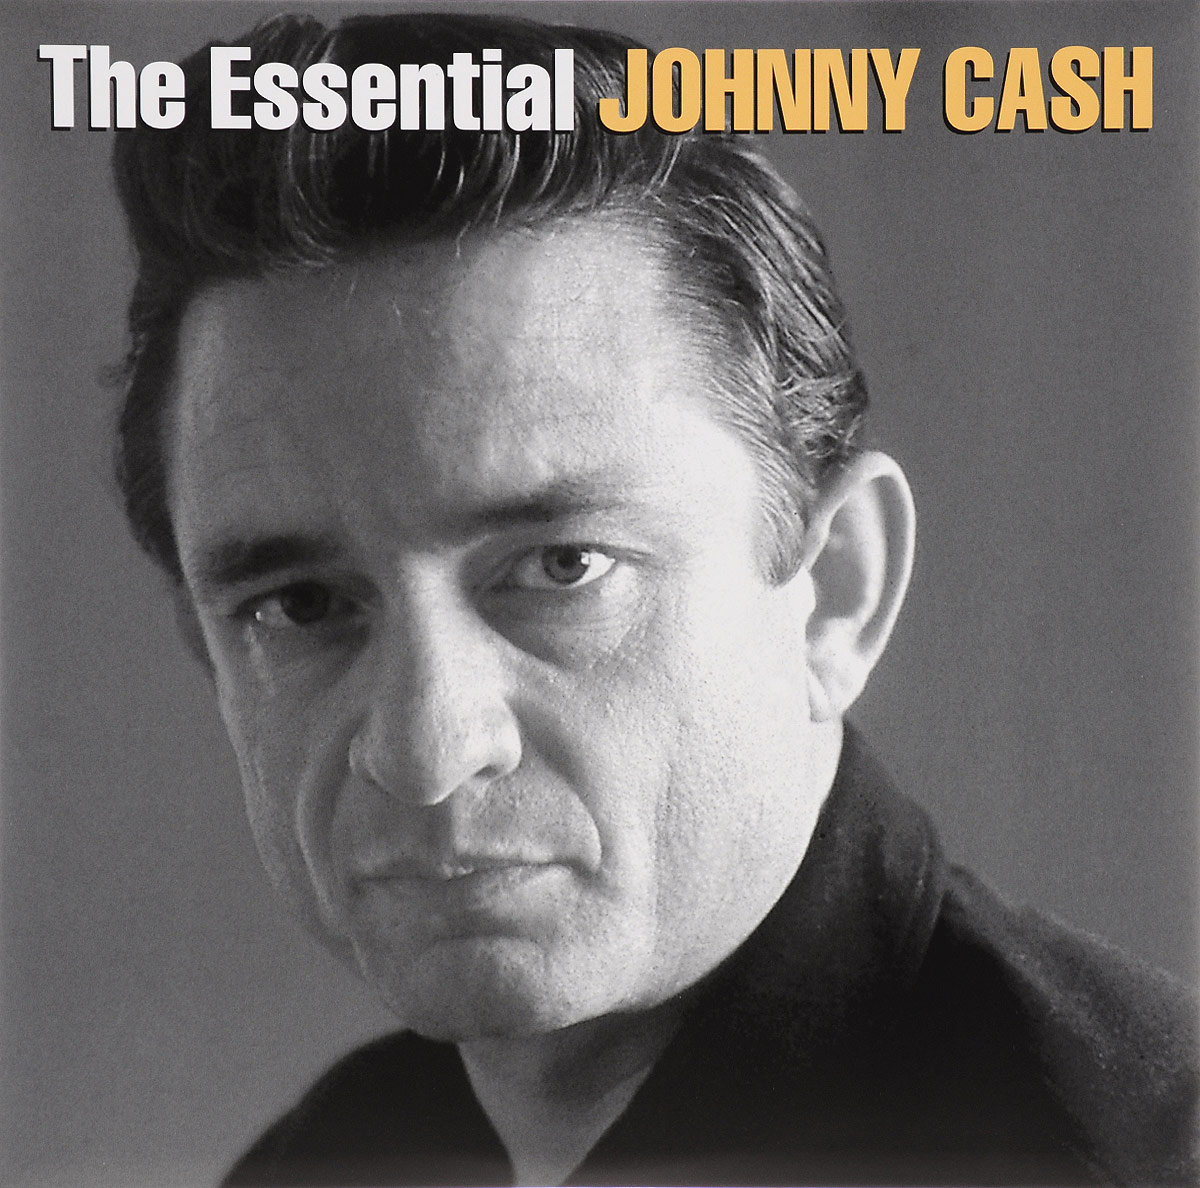 Джонни Кэш Johnny Cash. The Essential Johnny Cash (2 LP) bga reballing rework station with hand grip for 90x90mm stencils templates new